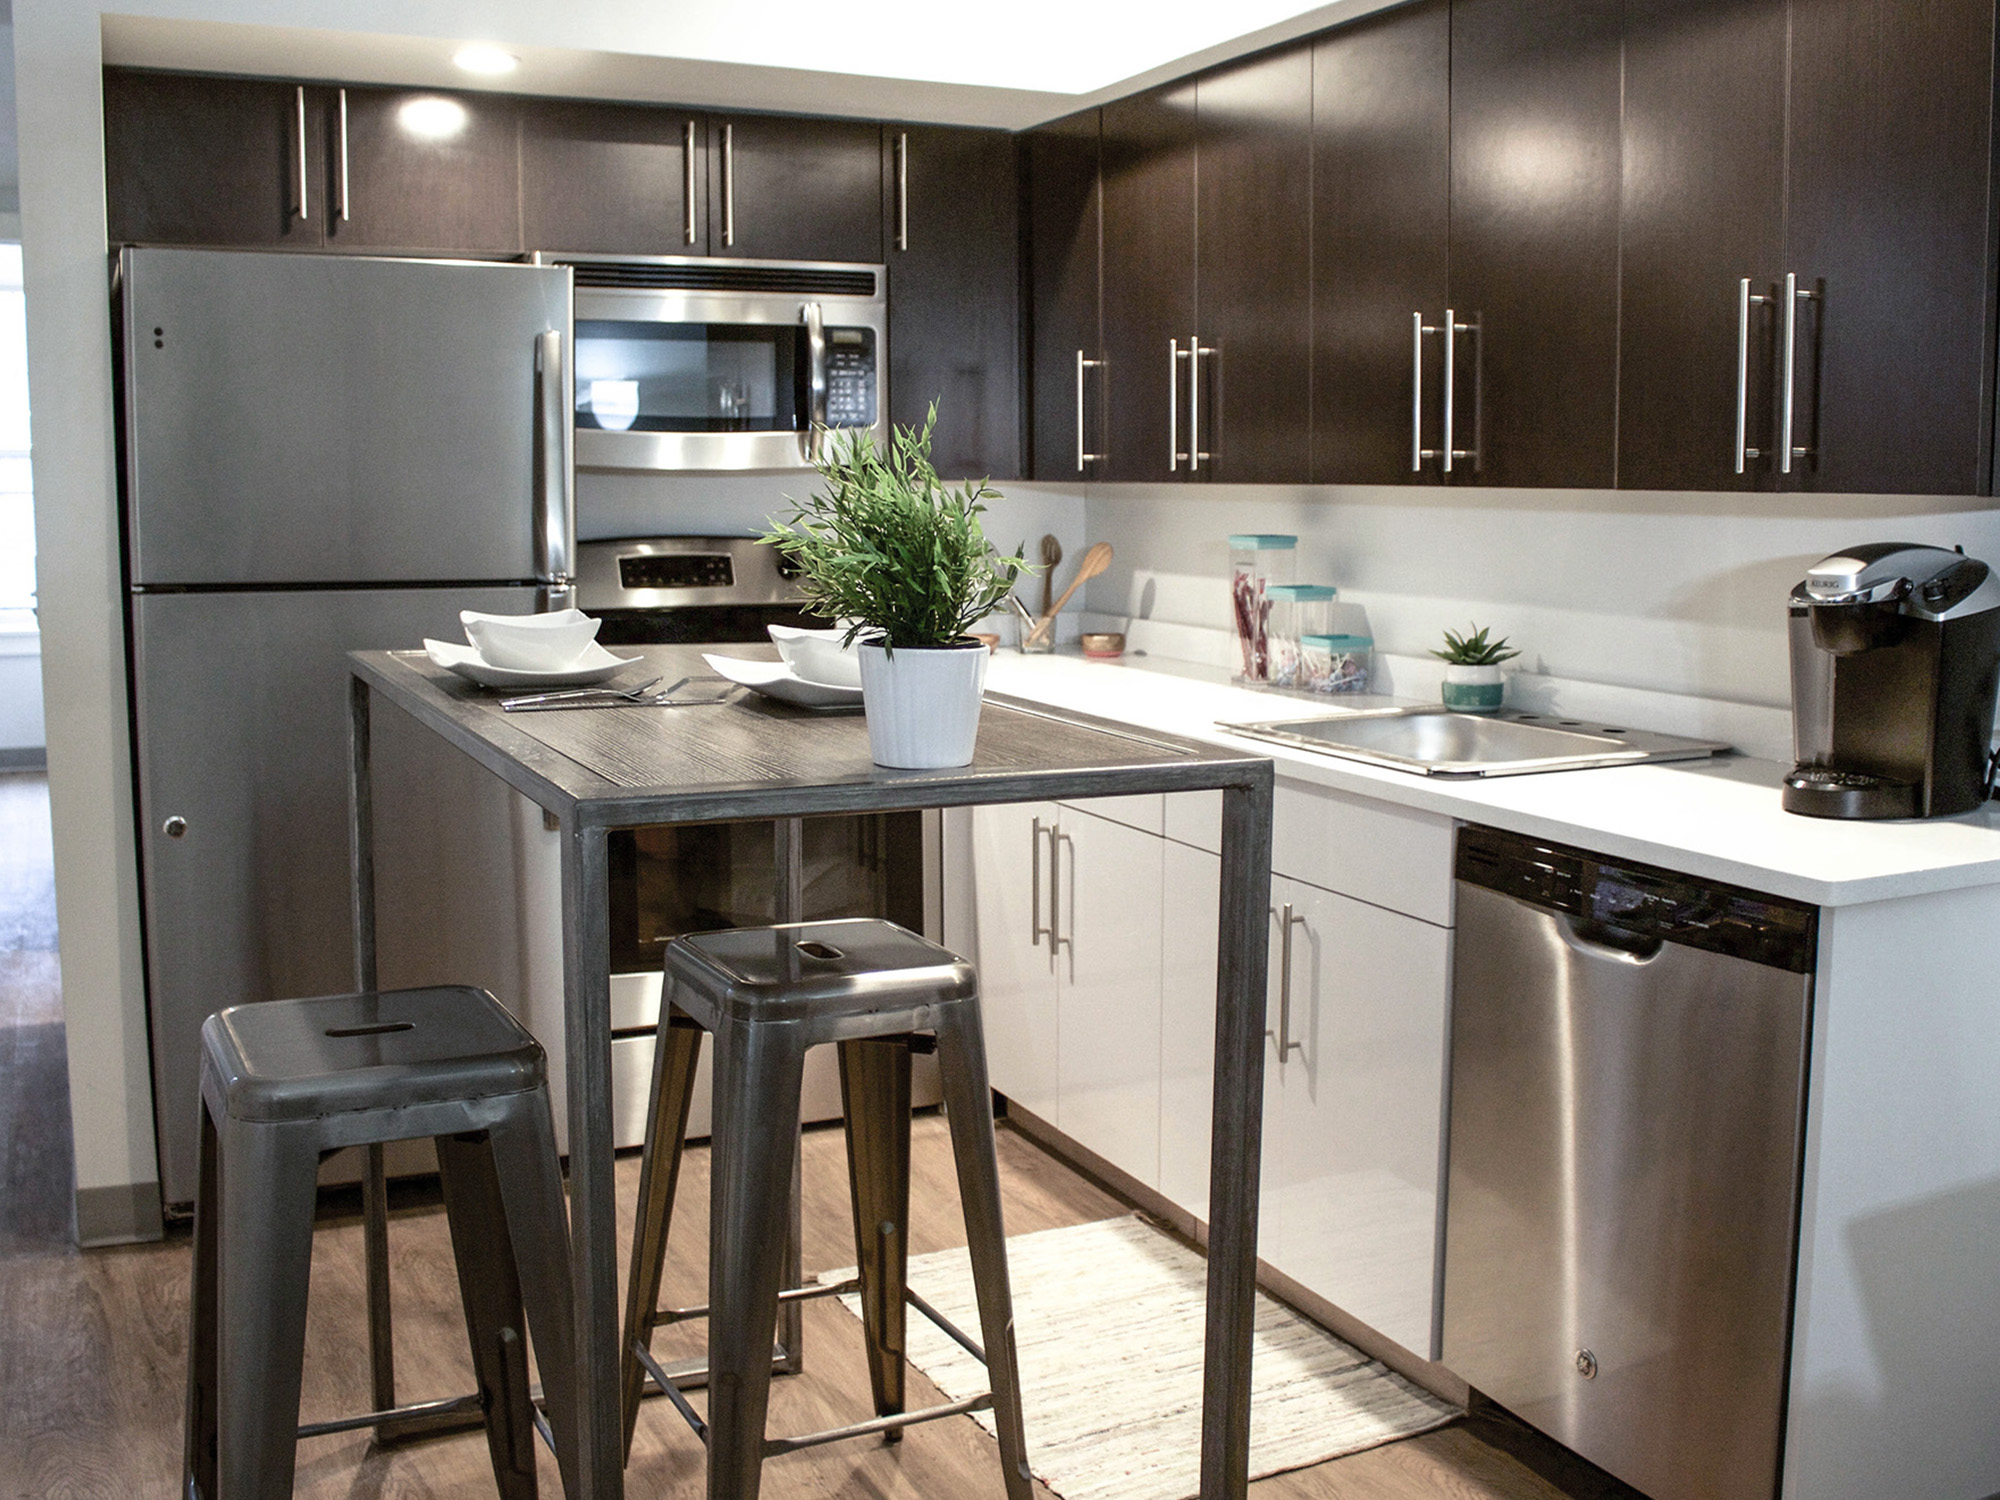 College sublease, college student housing near penn , penn off campus lofts